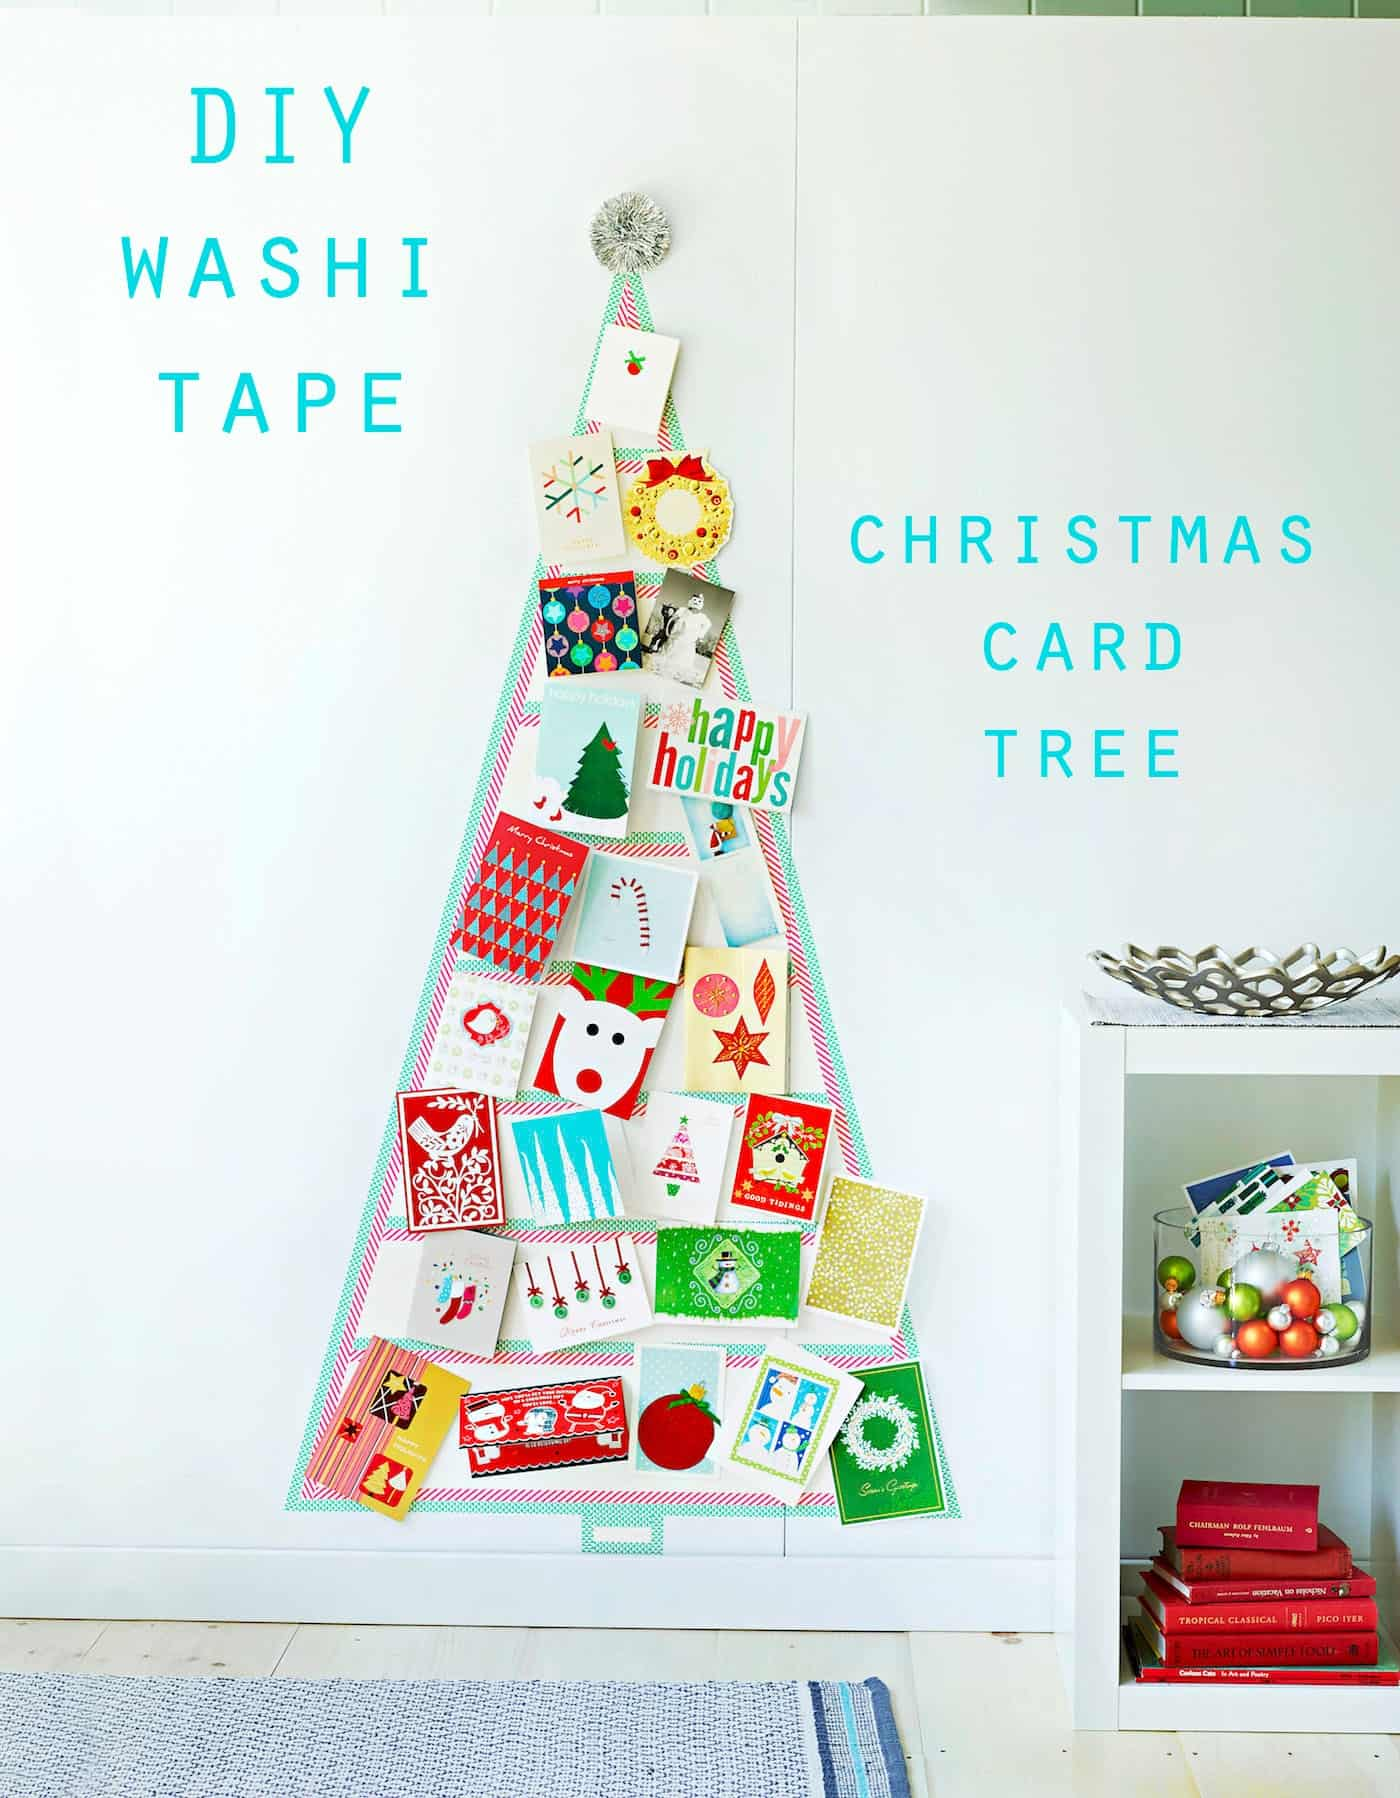 Diy washi tape christmas card tree wife in progress diy washi tape christmas card tree kristyandbryce Choice Image